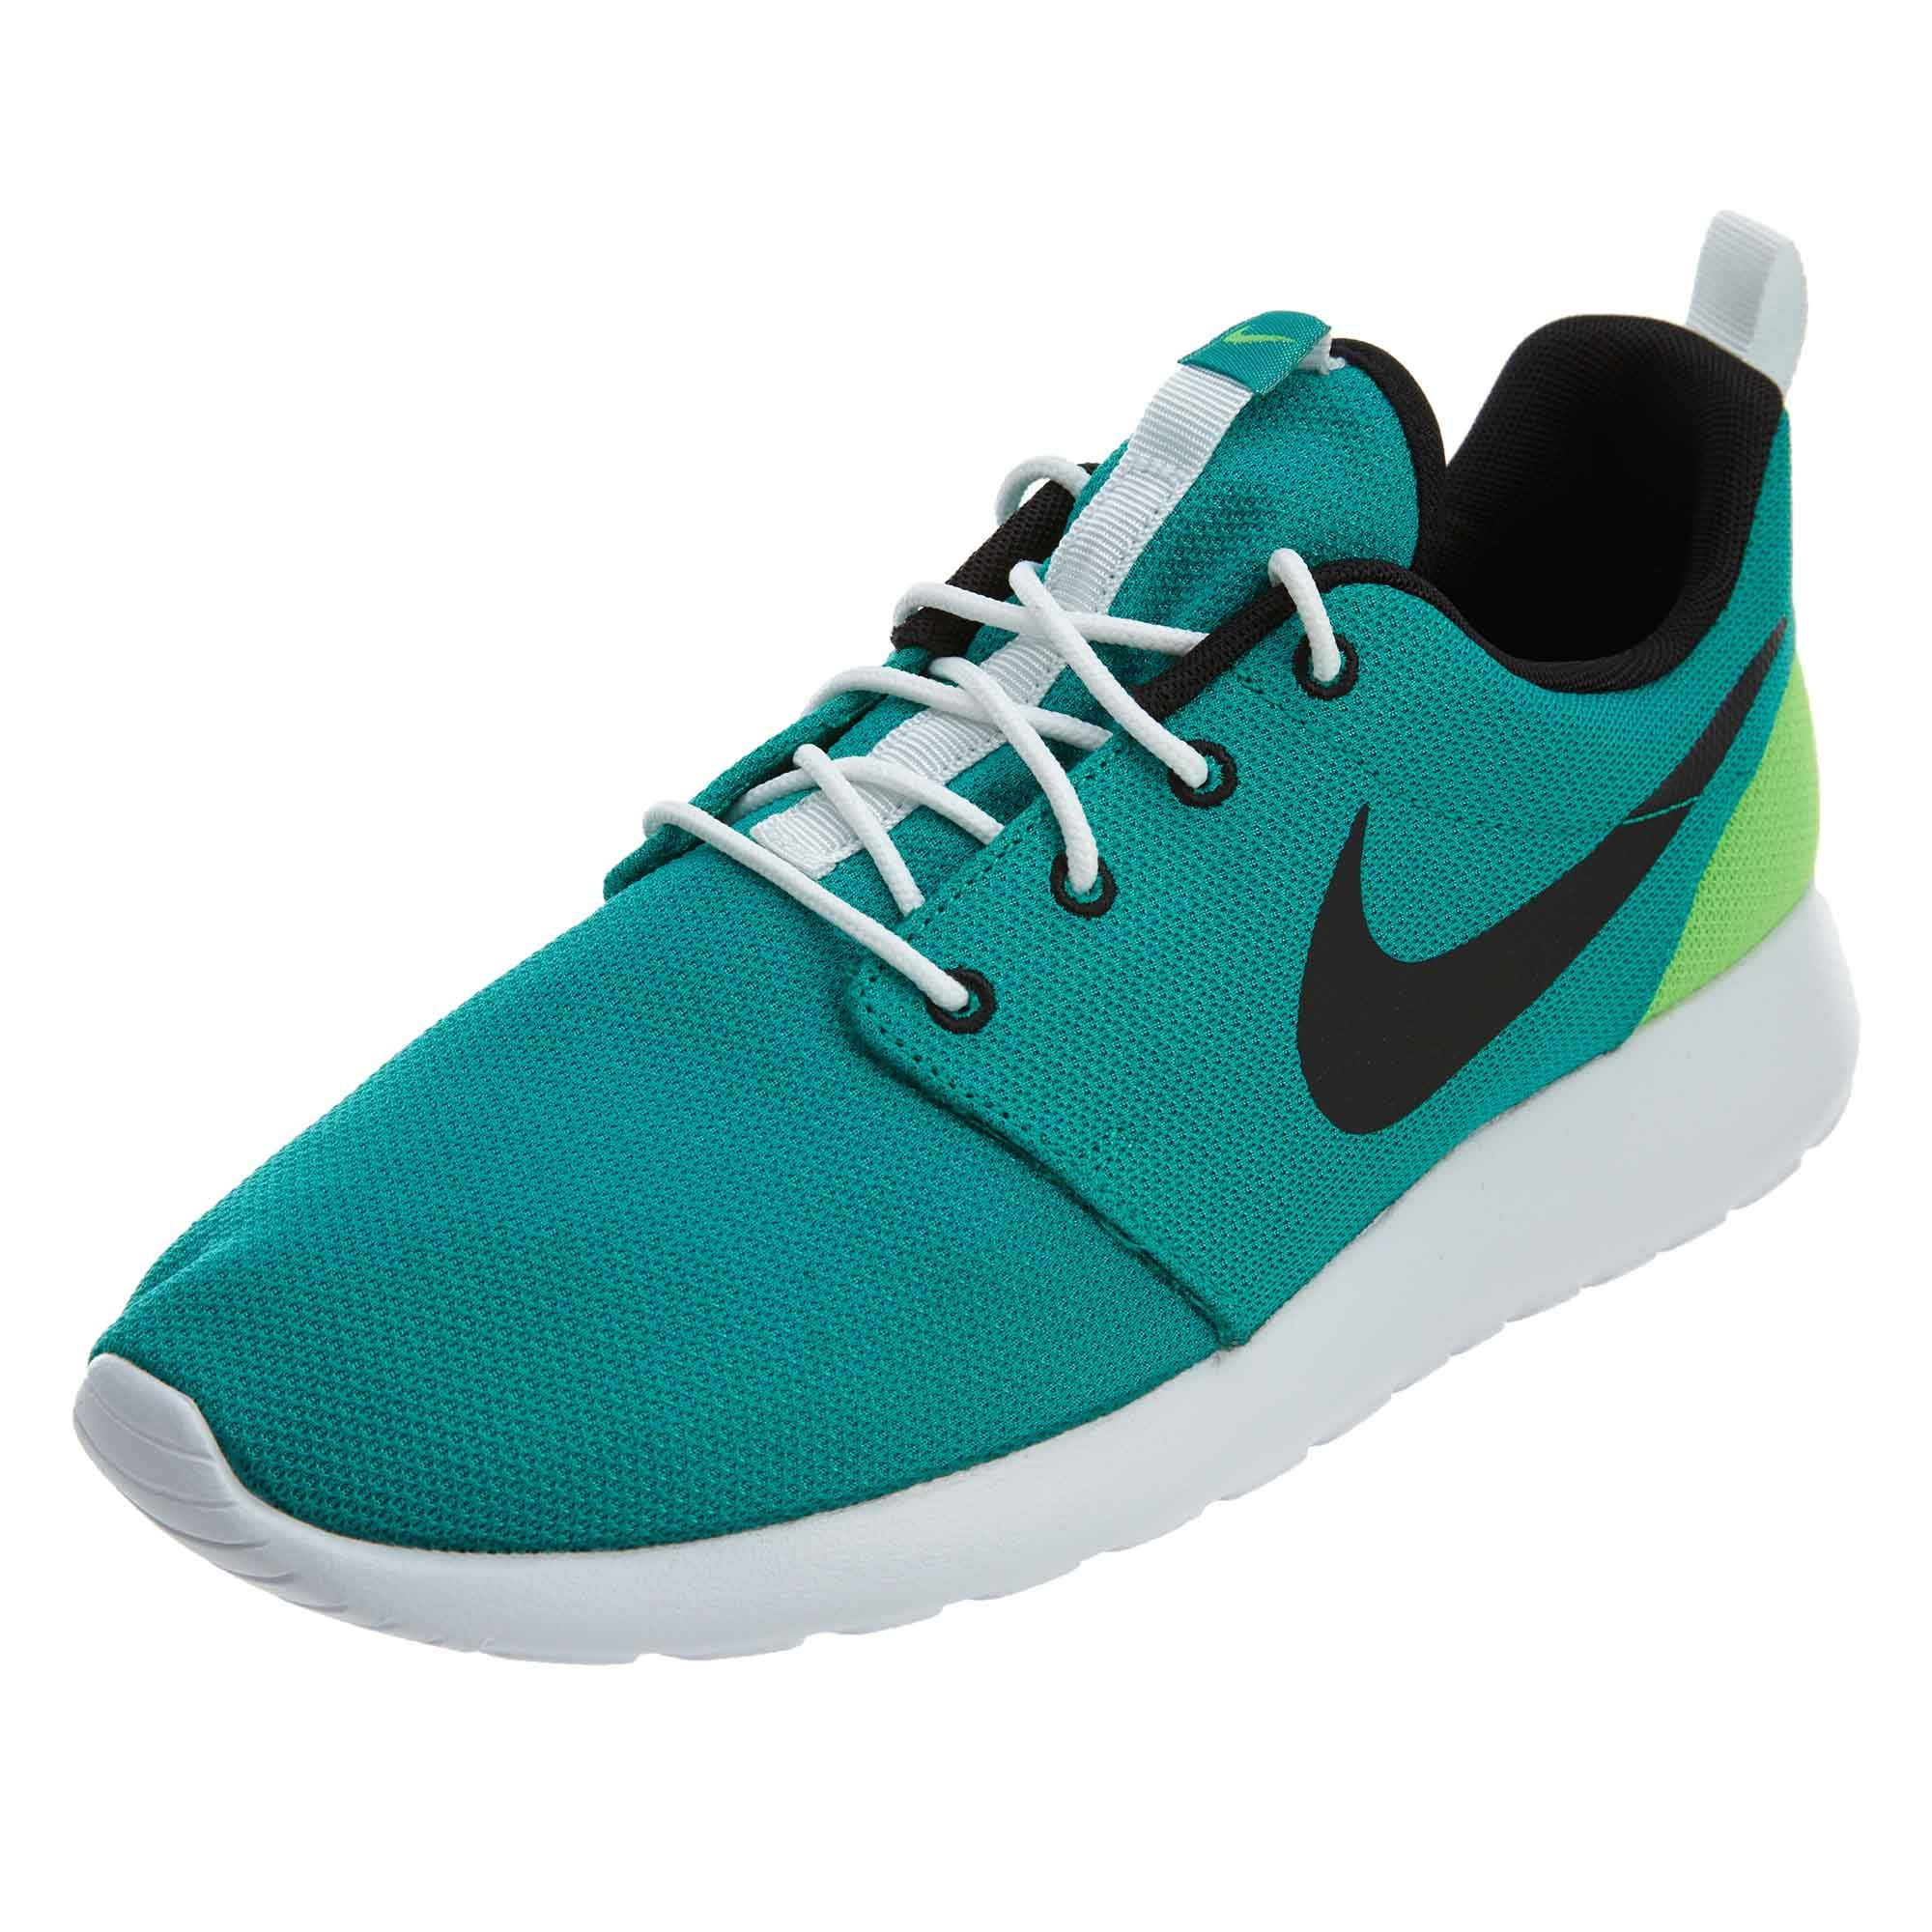 Galleon Nike Men's Roshe Run (12 M US, Neptune GreenBlack)